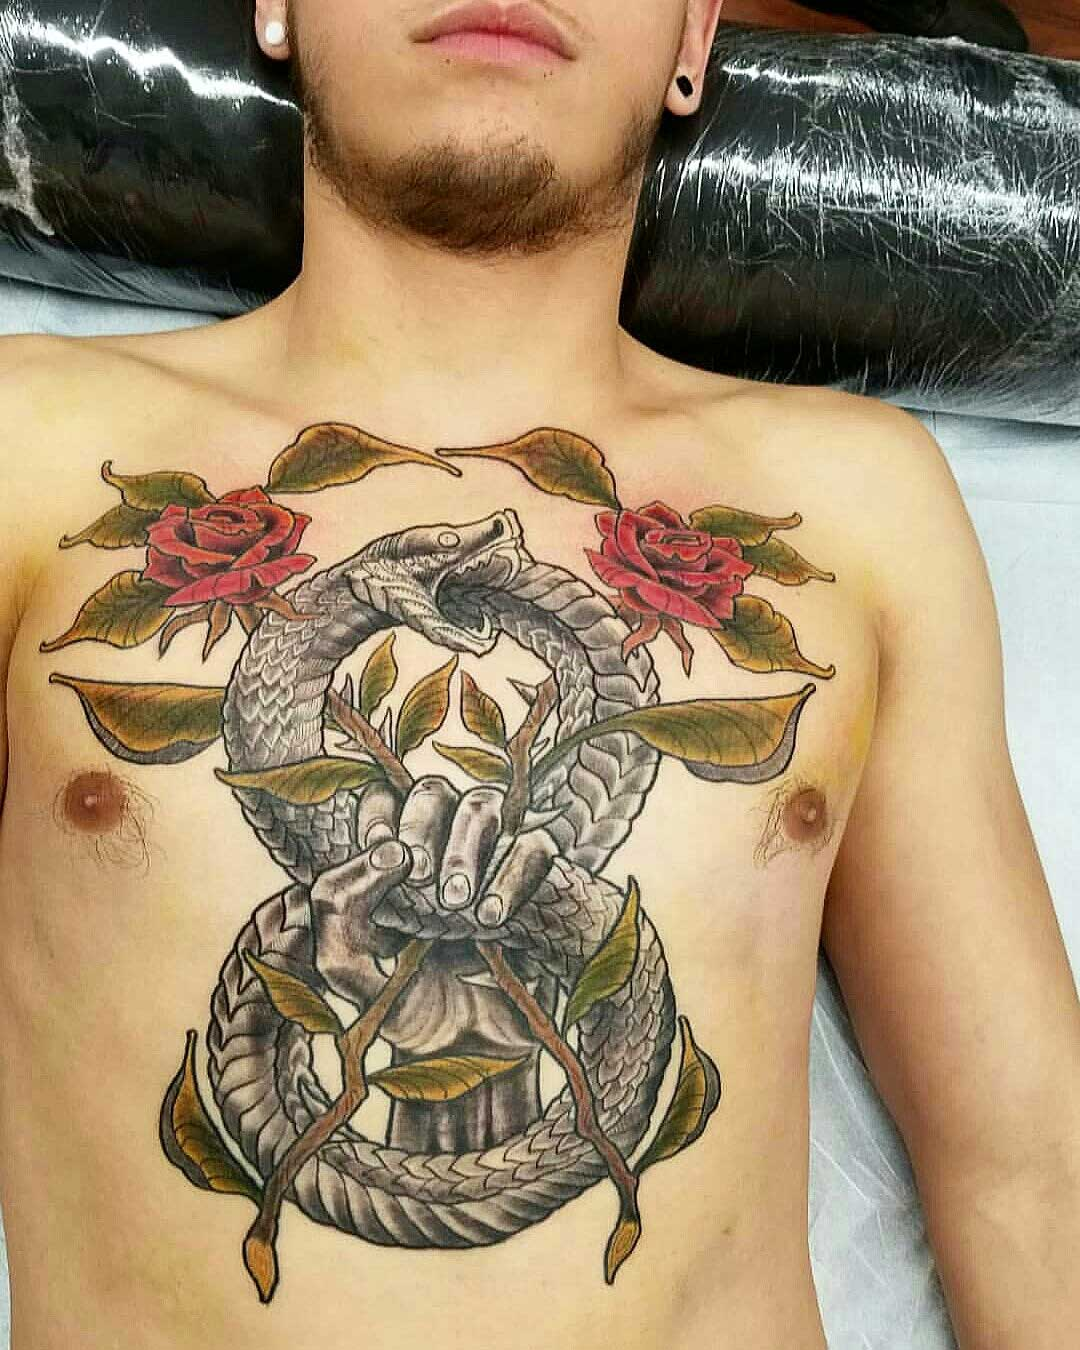 neo-traditional-style-tattoo-of-serpent-ouroboros-on-torso